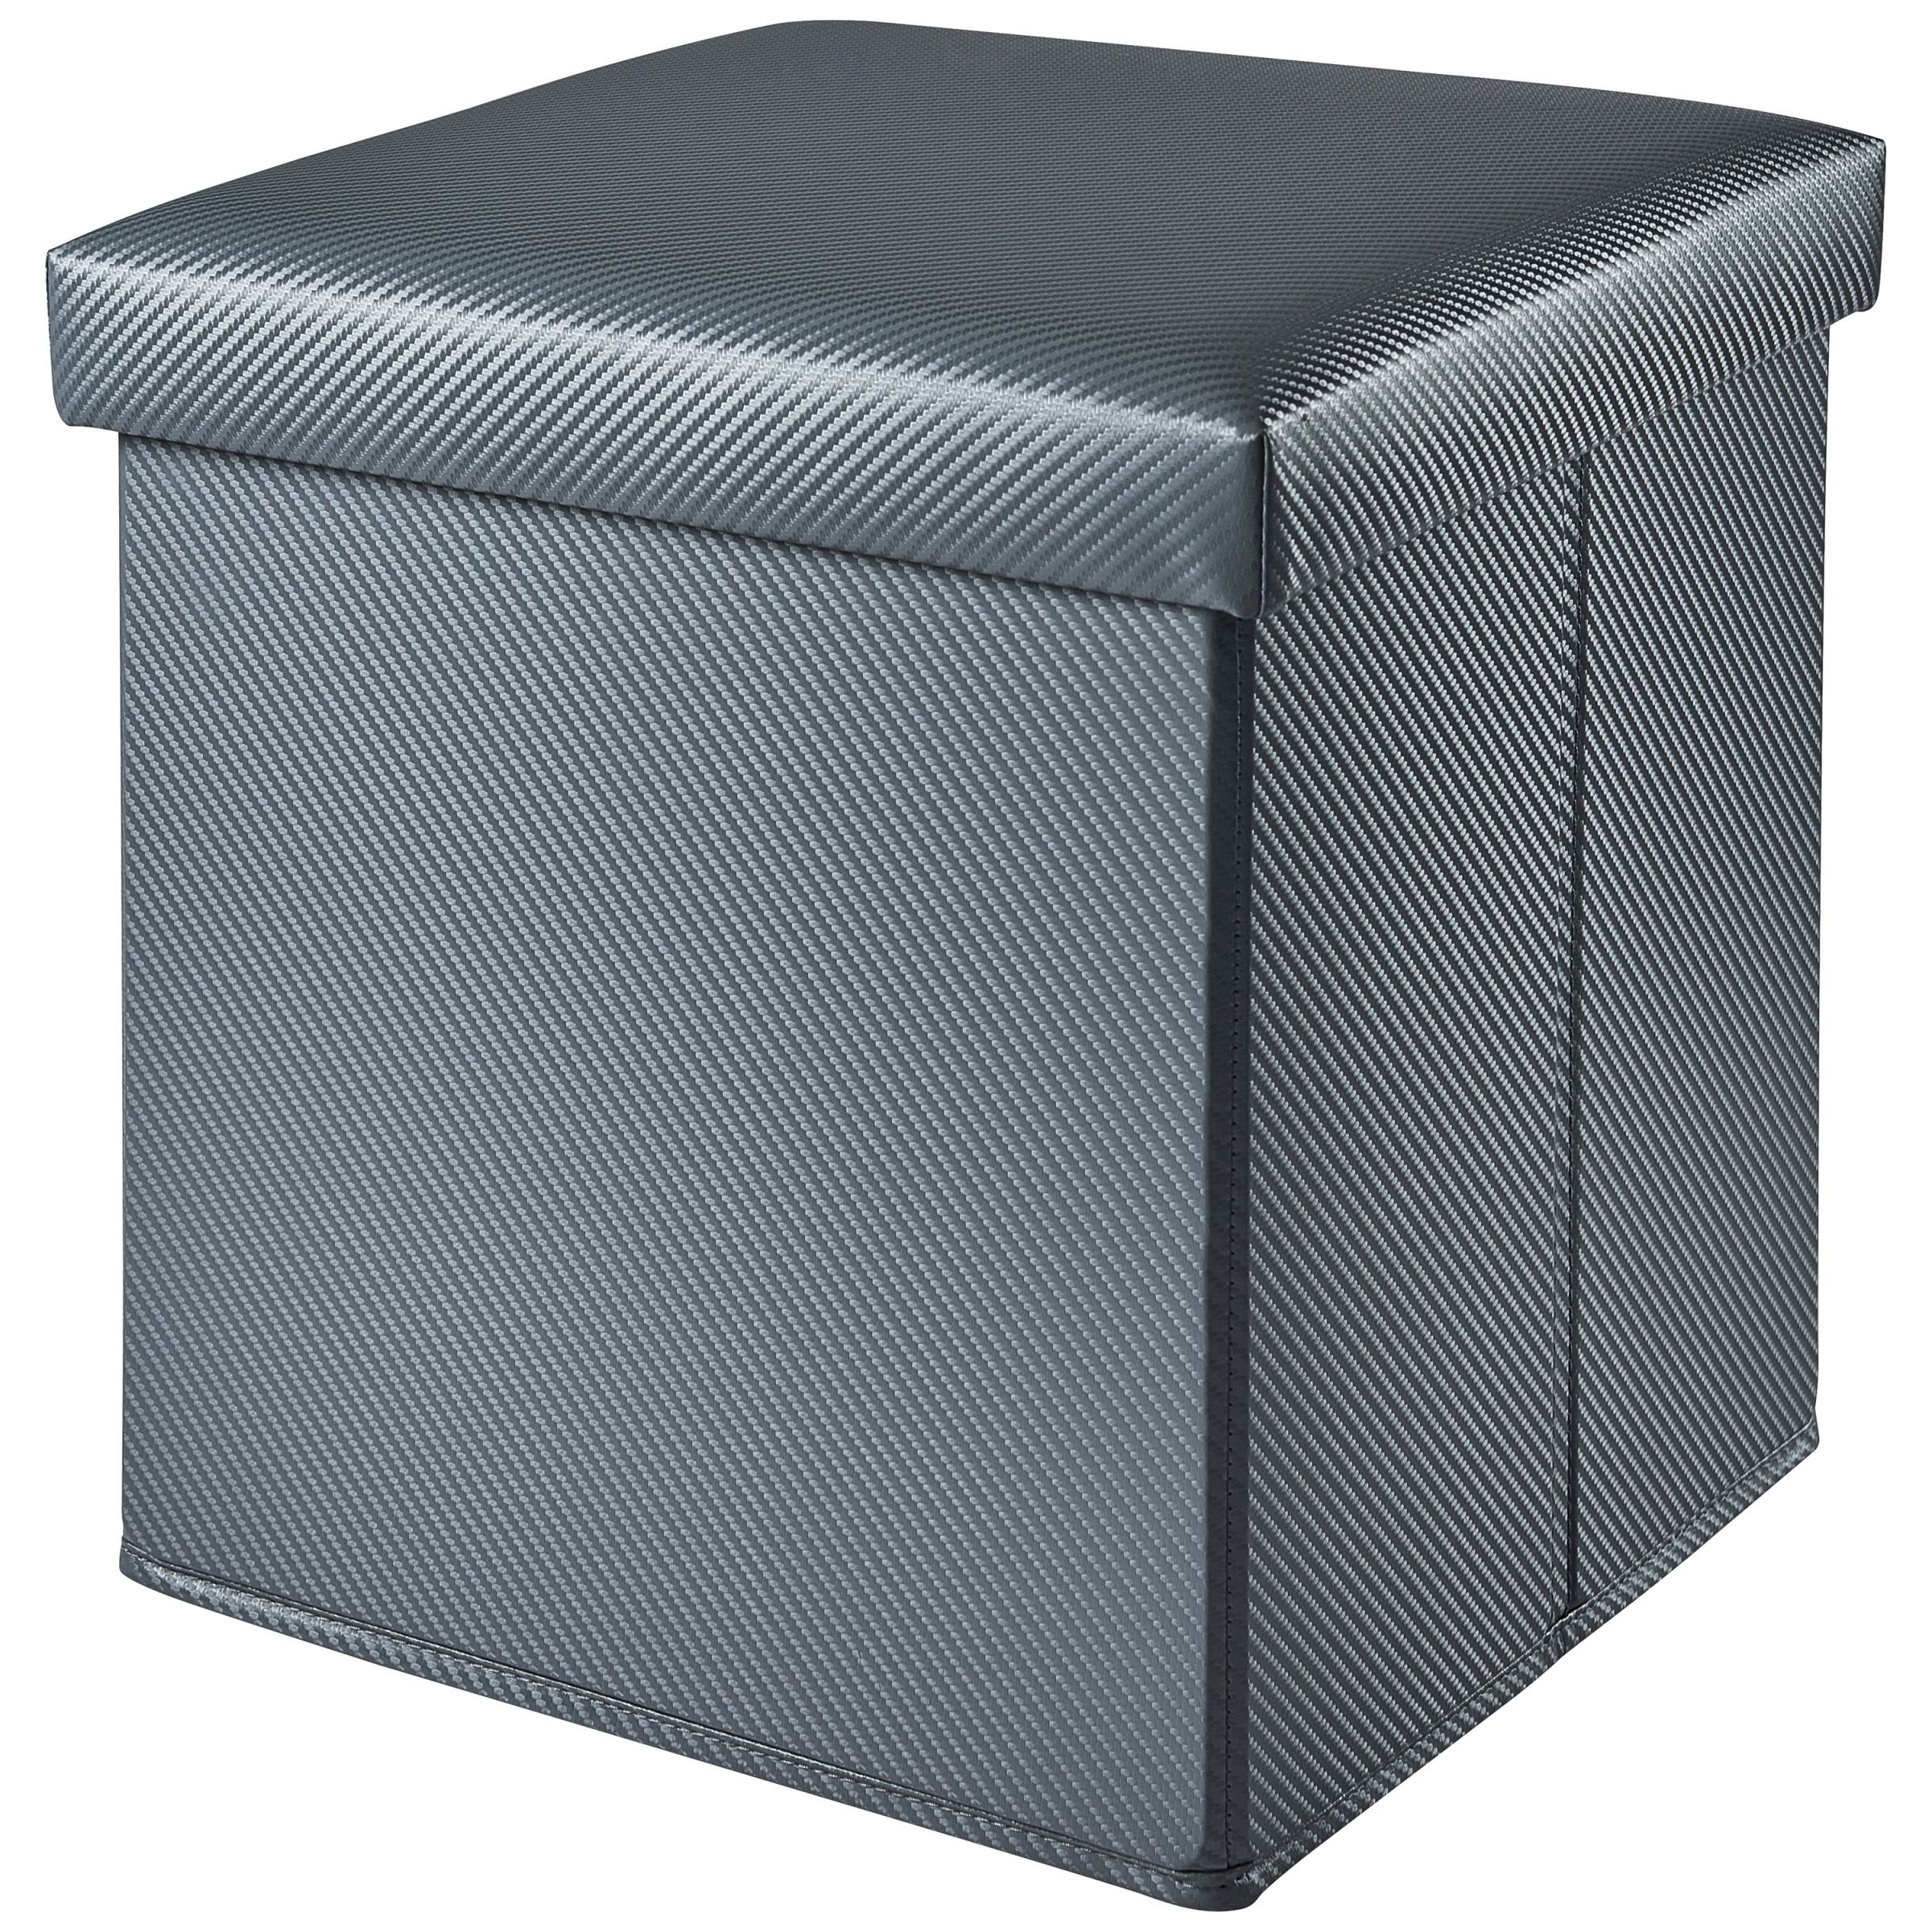 Mainstays Collapsible Storage Ottoman, Carbon White